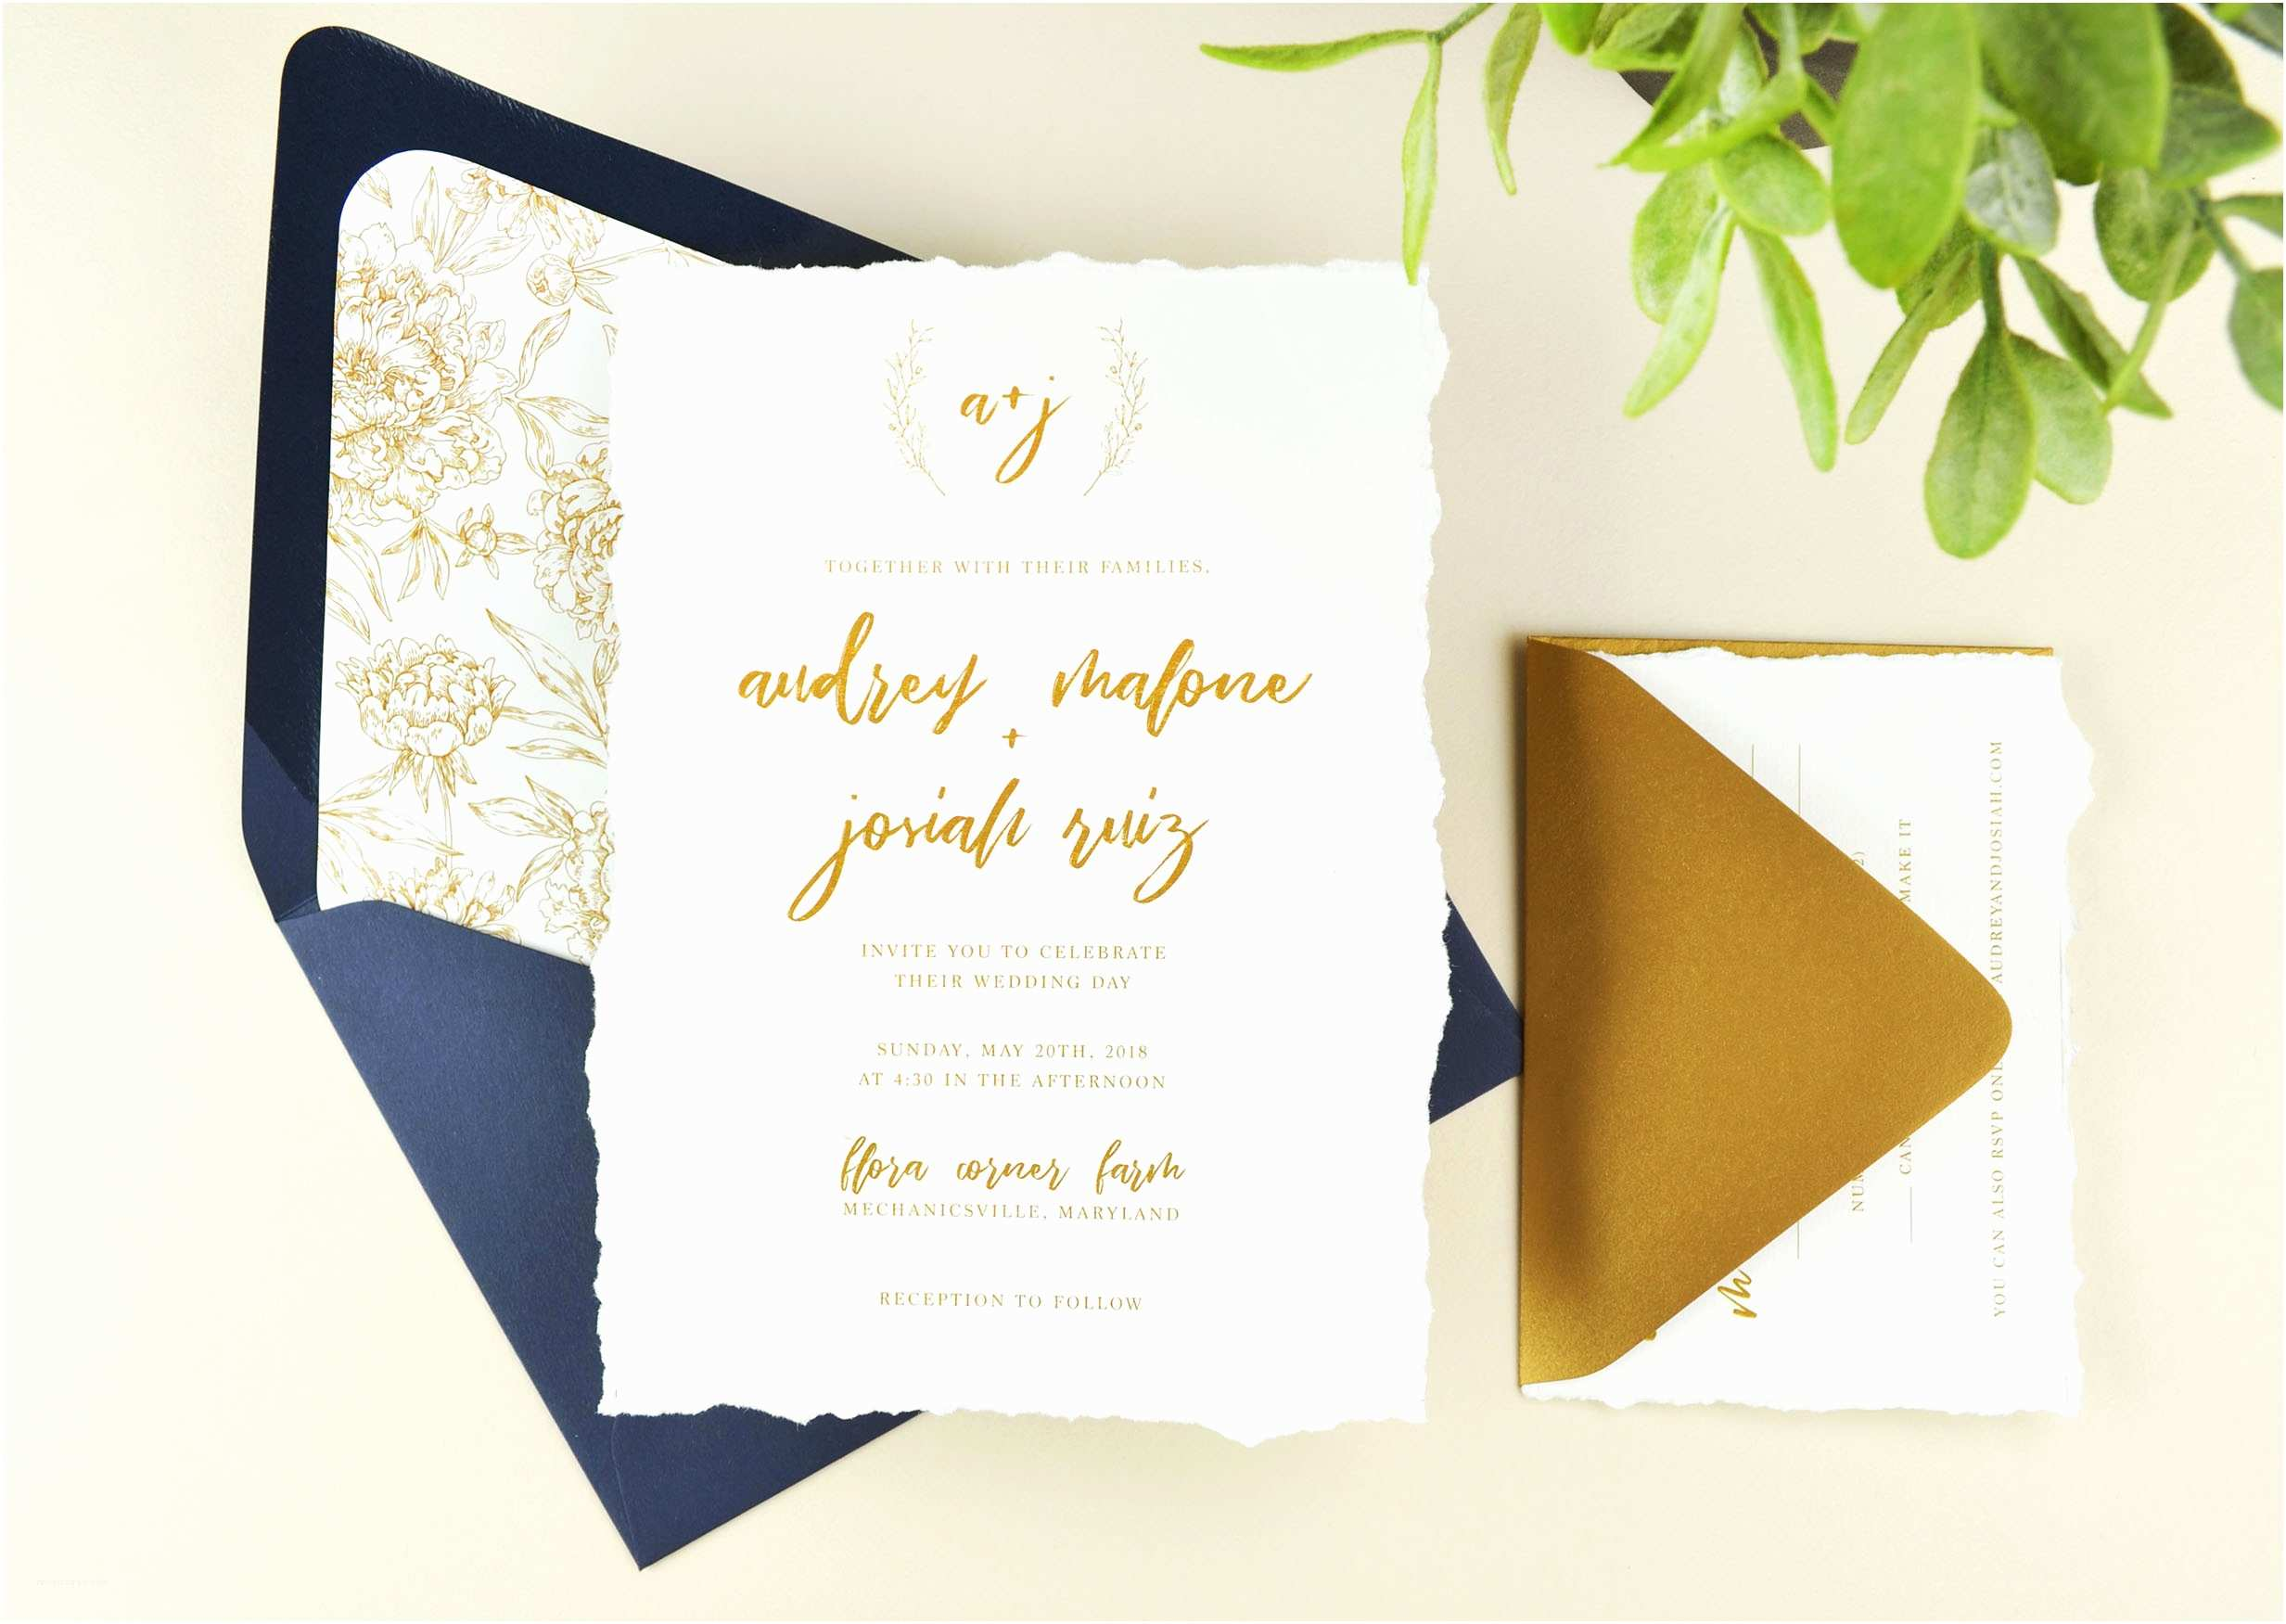 Deckle Edge Paper Wedding Invitations Diy Deckled Edge Paper Wedding Invitations Cards